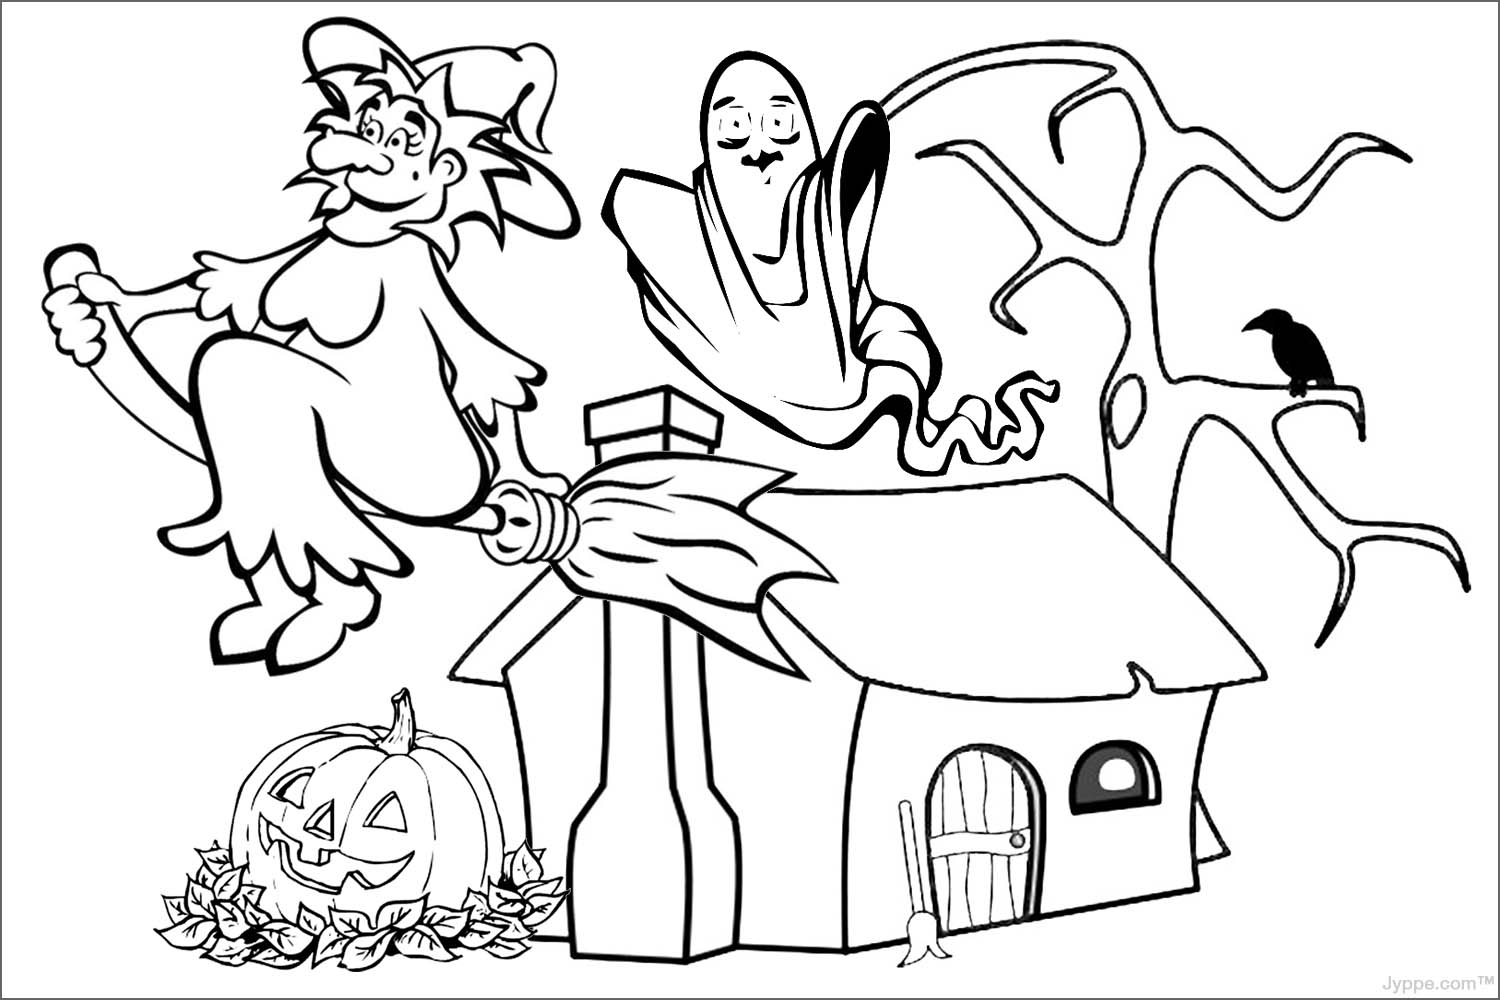 1500x1000 halloween images to color 4 - Halloween Pitchers